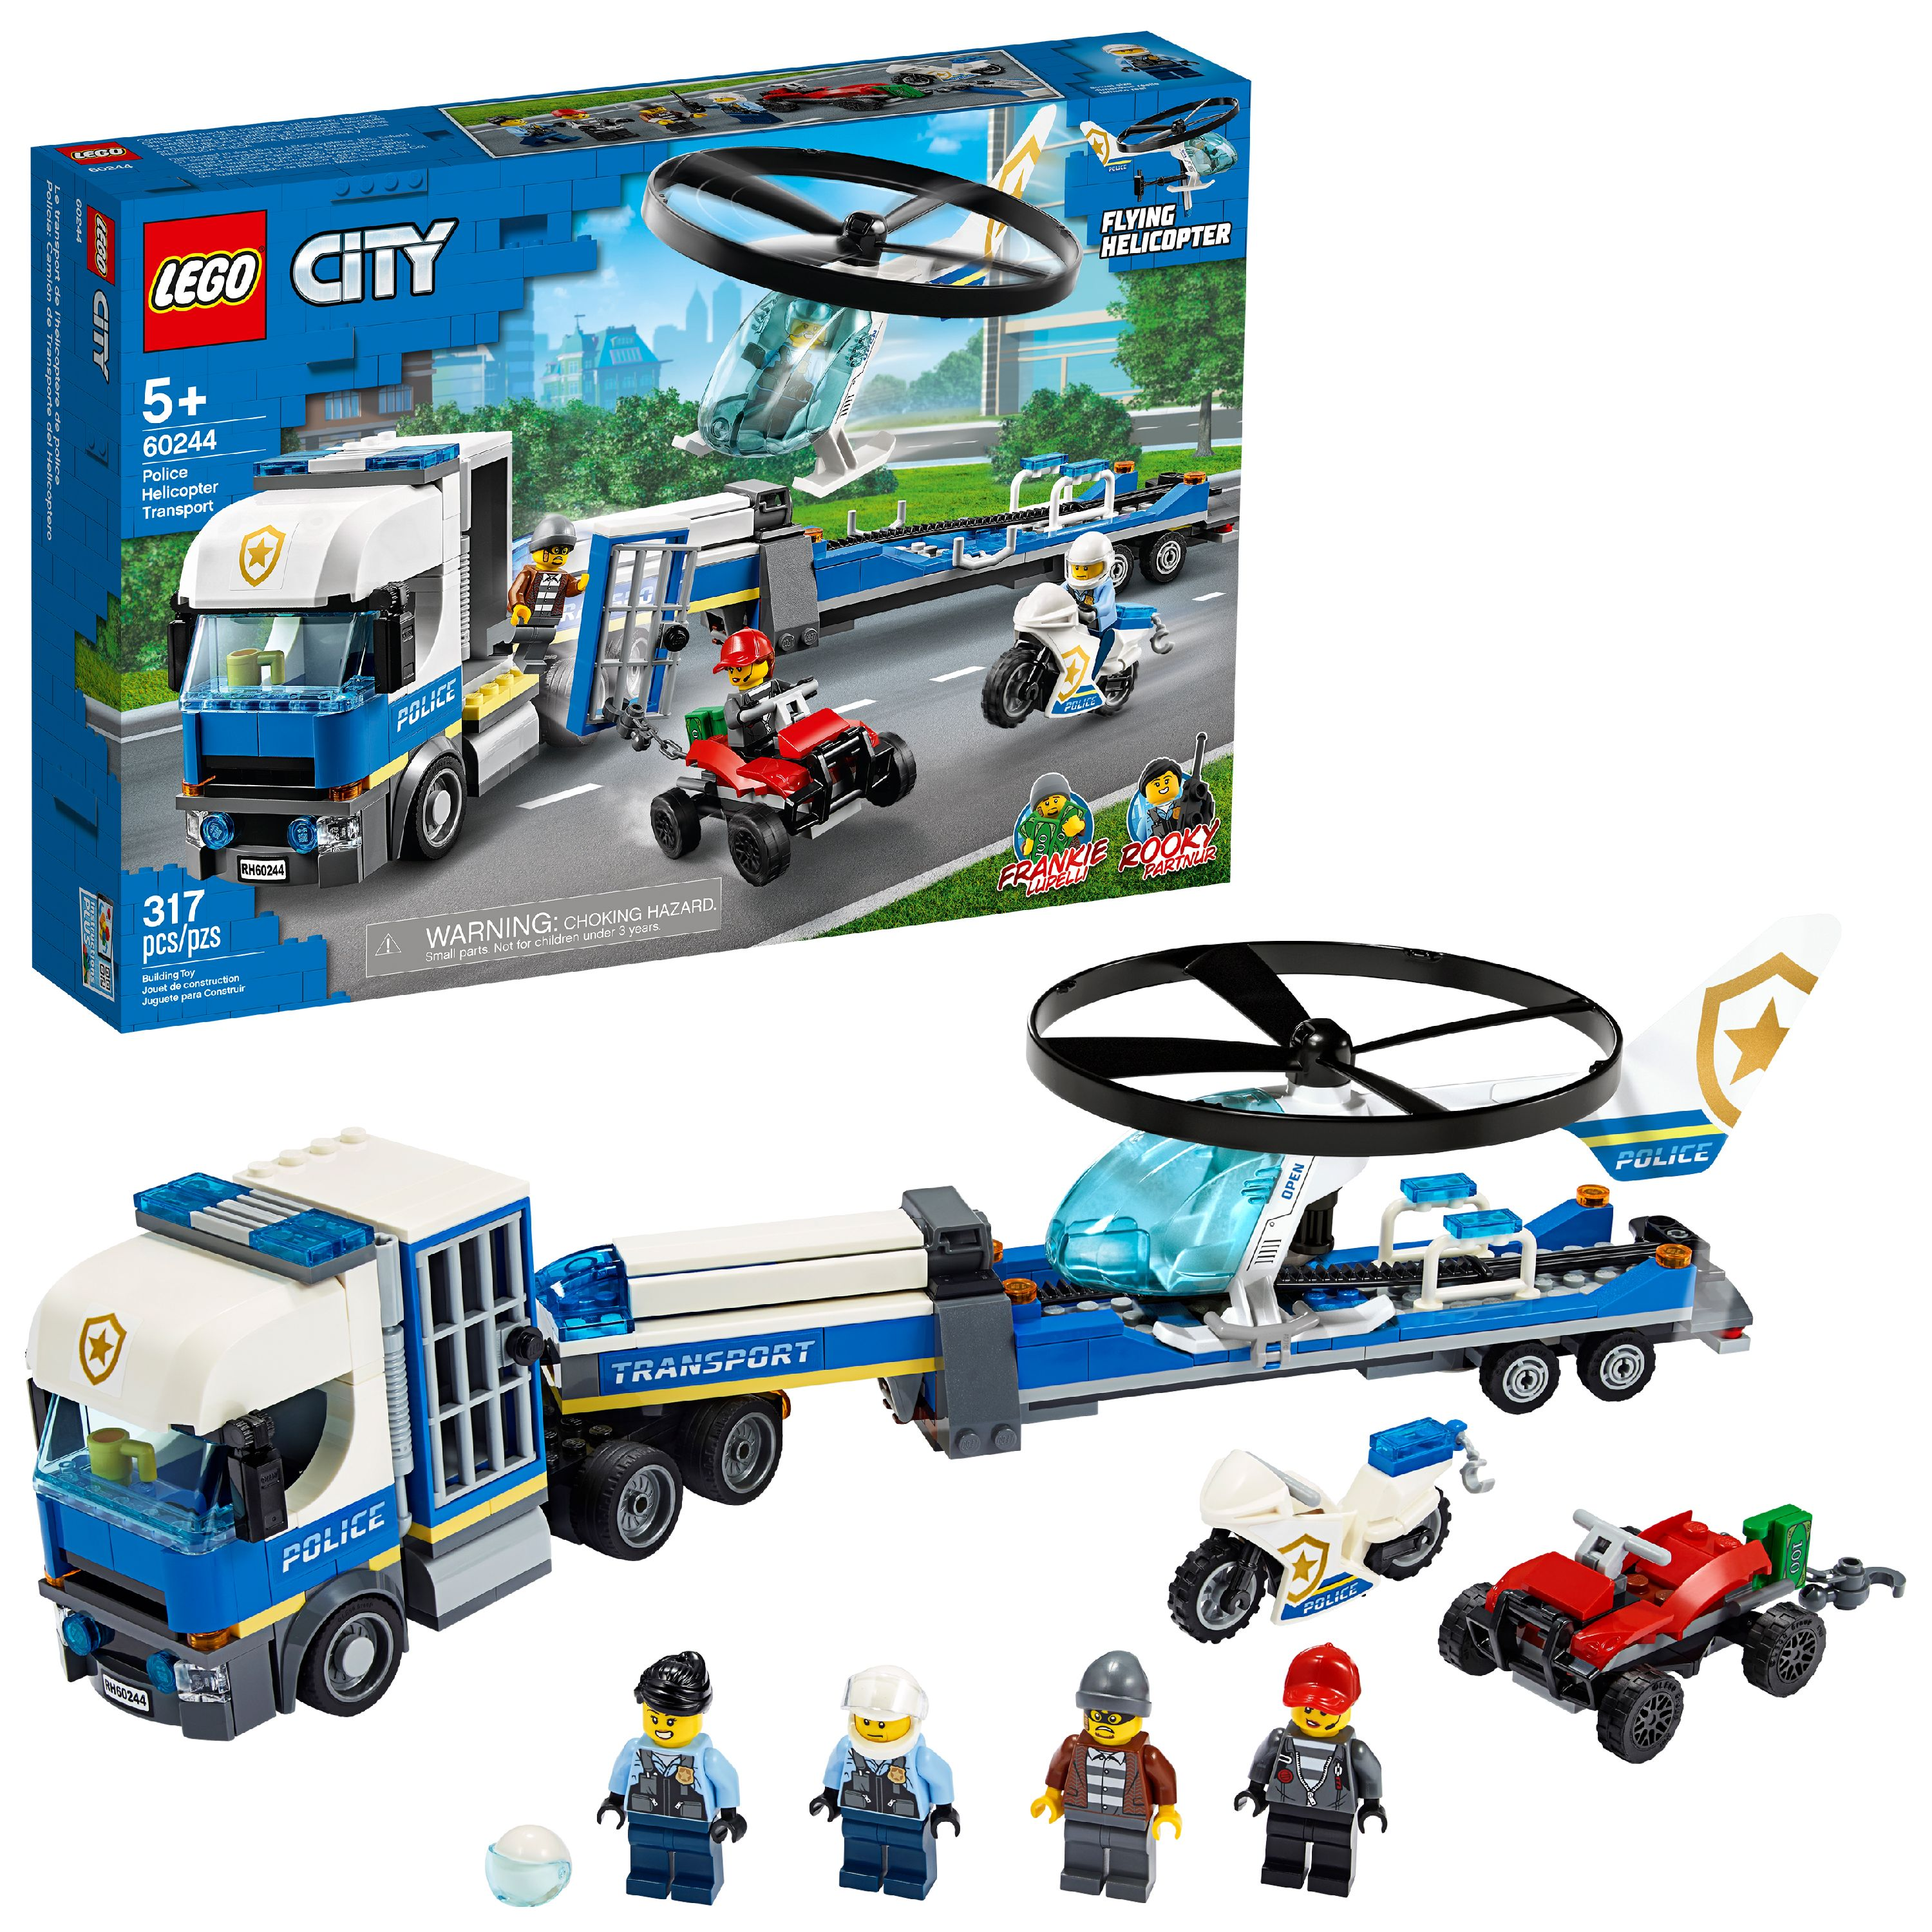 LEGO City Police Helicopter Transport 60244 Building Set for Kids (317 Pieces)